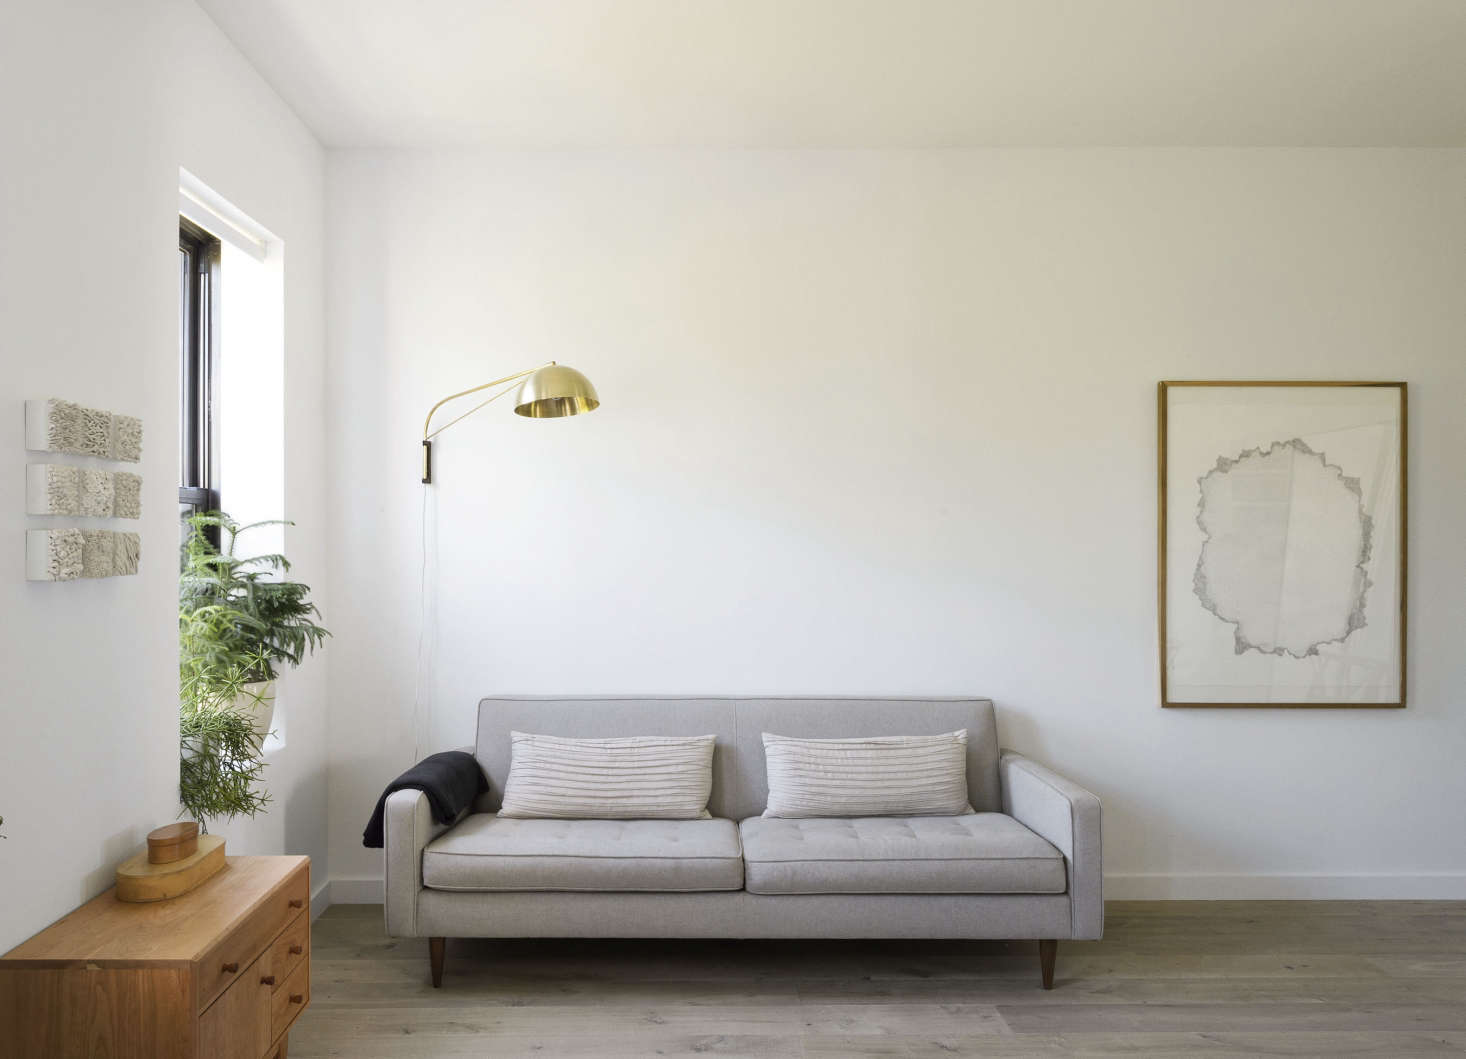 Big Sofa Occasion How To Buy A Couch Or Sofa That Will Last Expert Advice